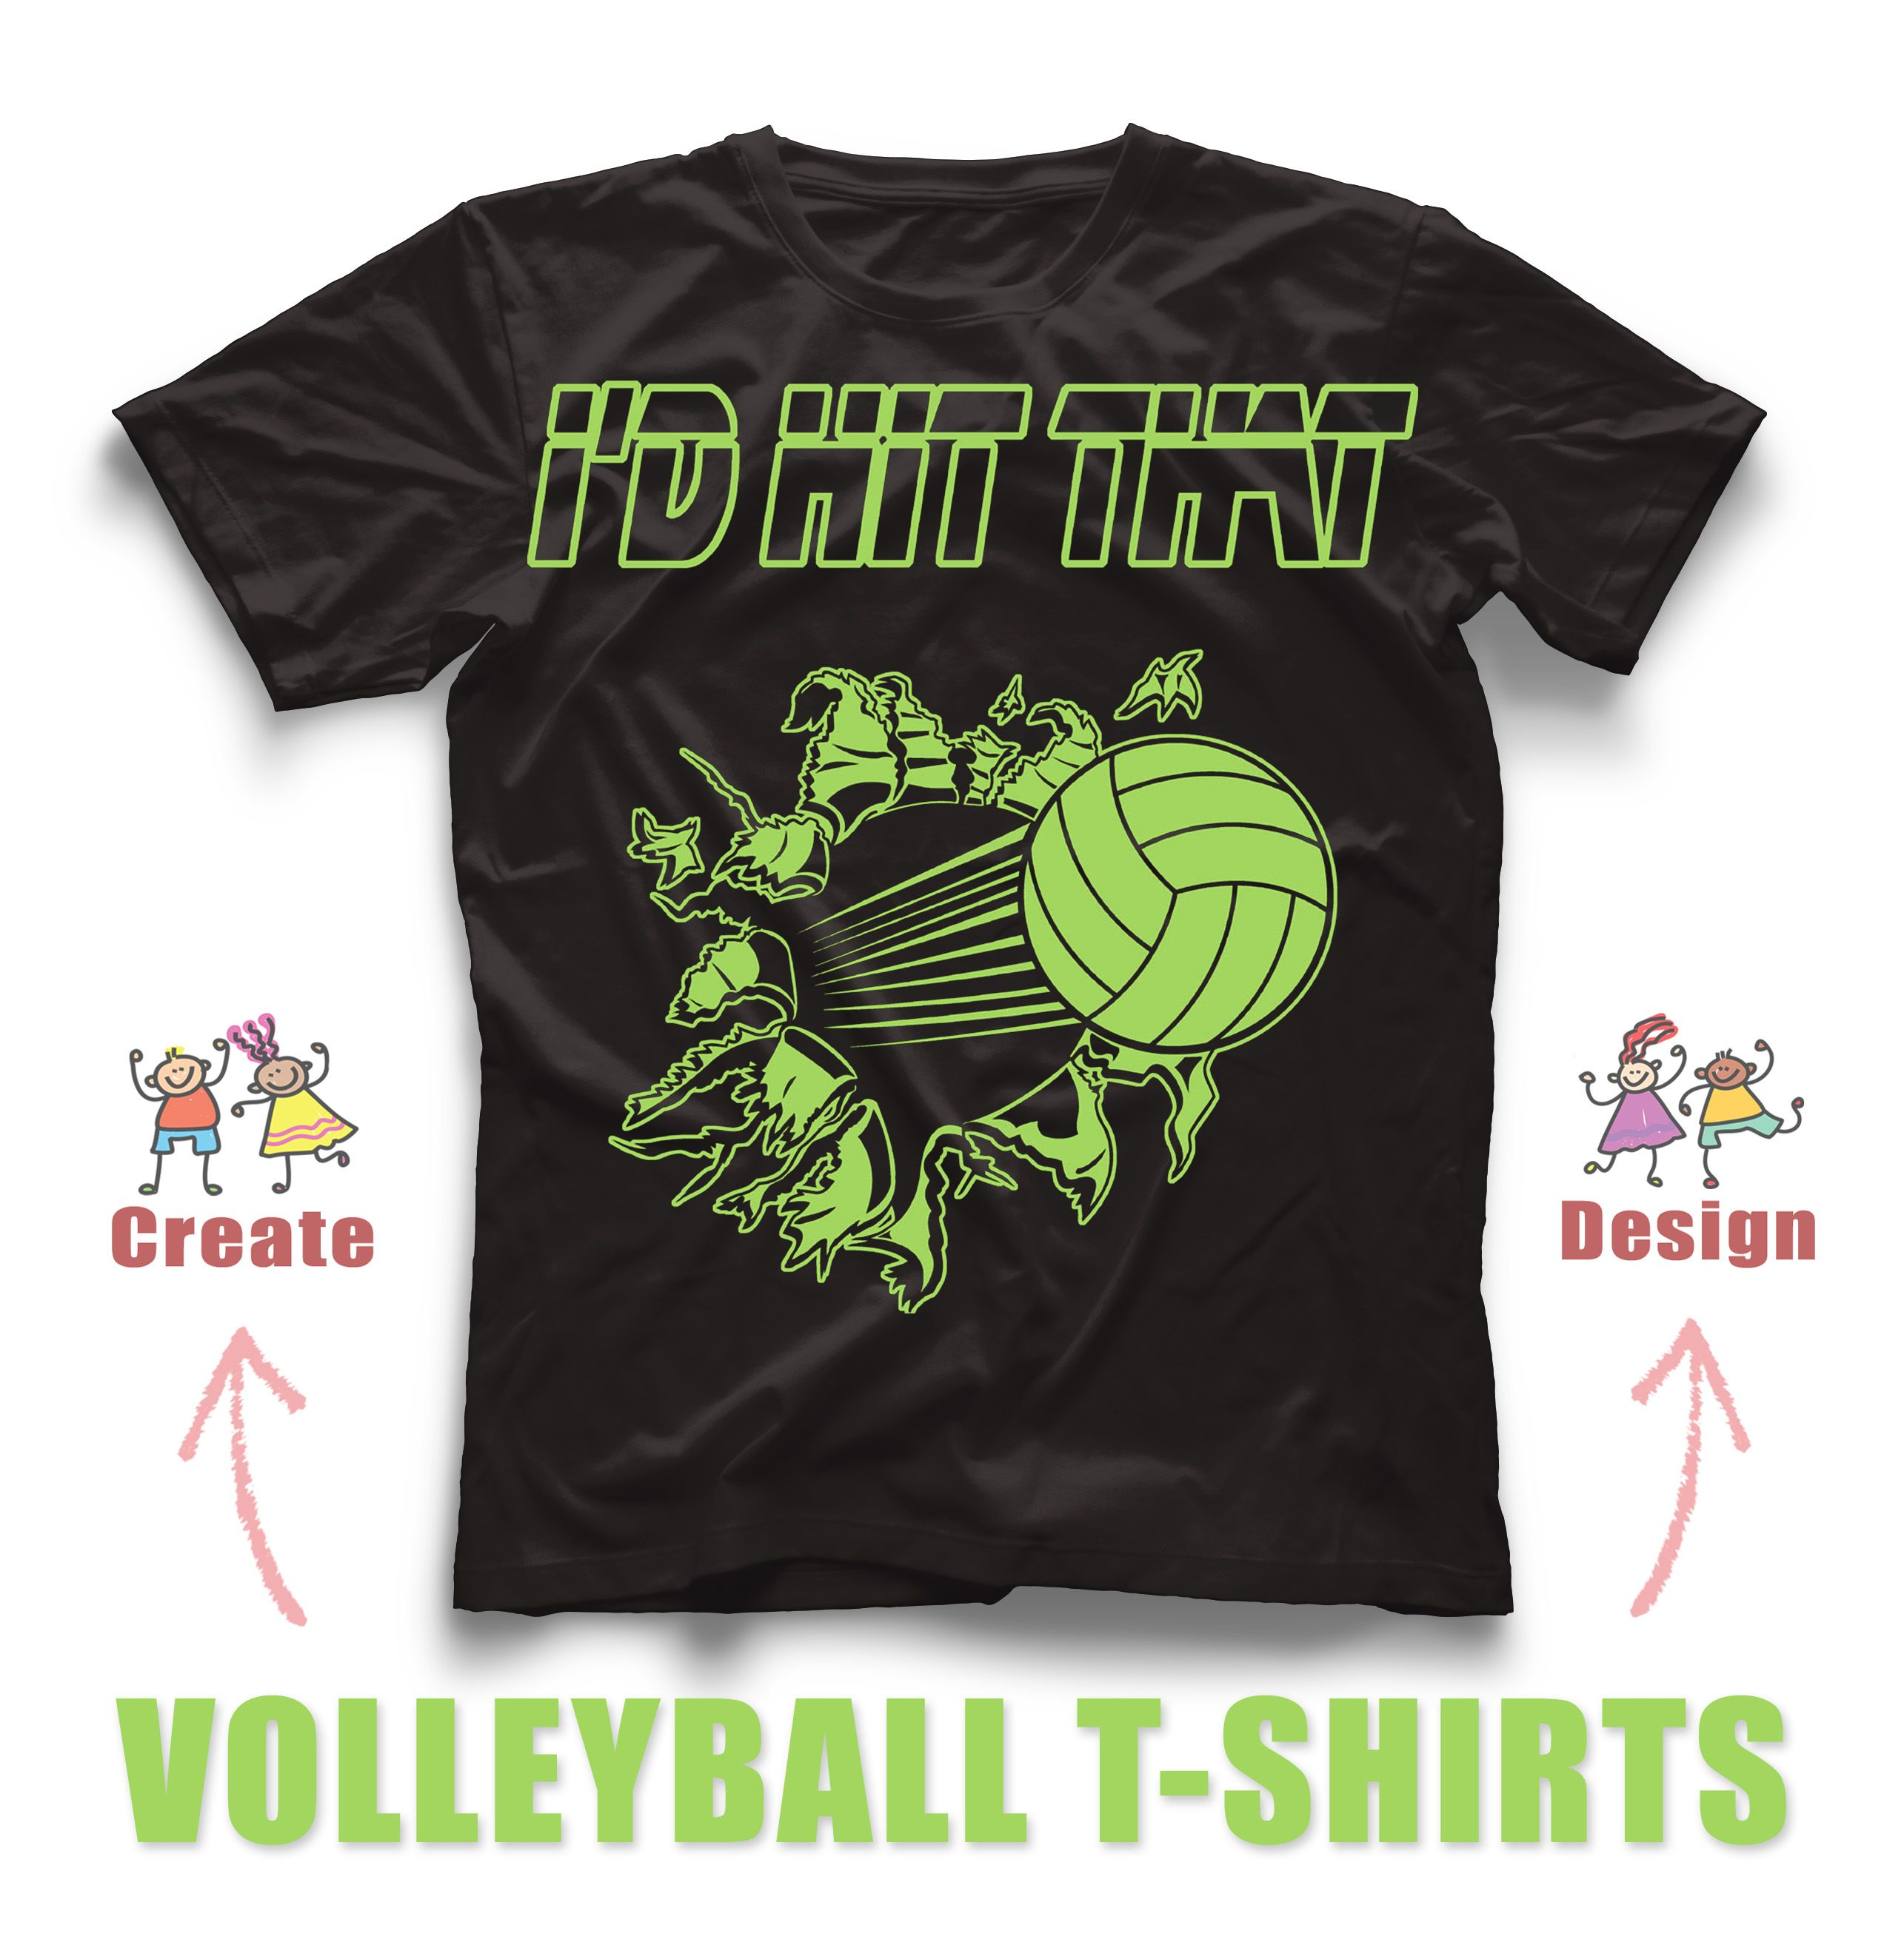 I D Hit That Volleyball Custom T Shirt Design Create And Design Online With Our Desig T Shirt Design Template Volleyball T Shirt Designs Custom Tshirt Design